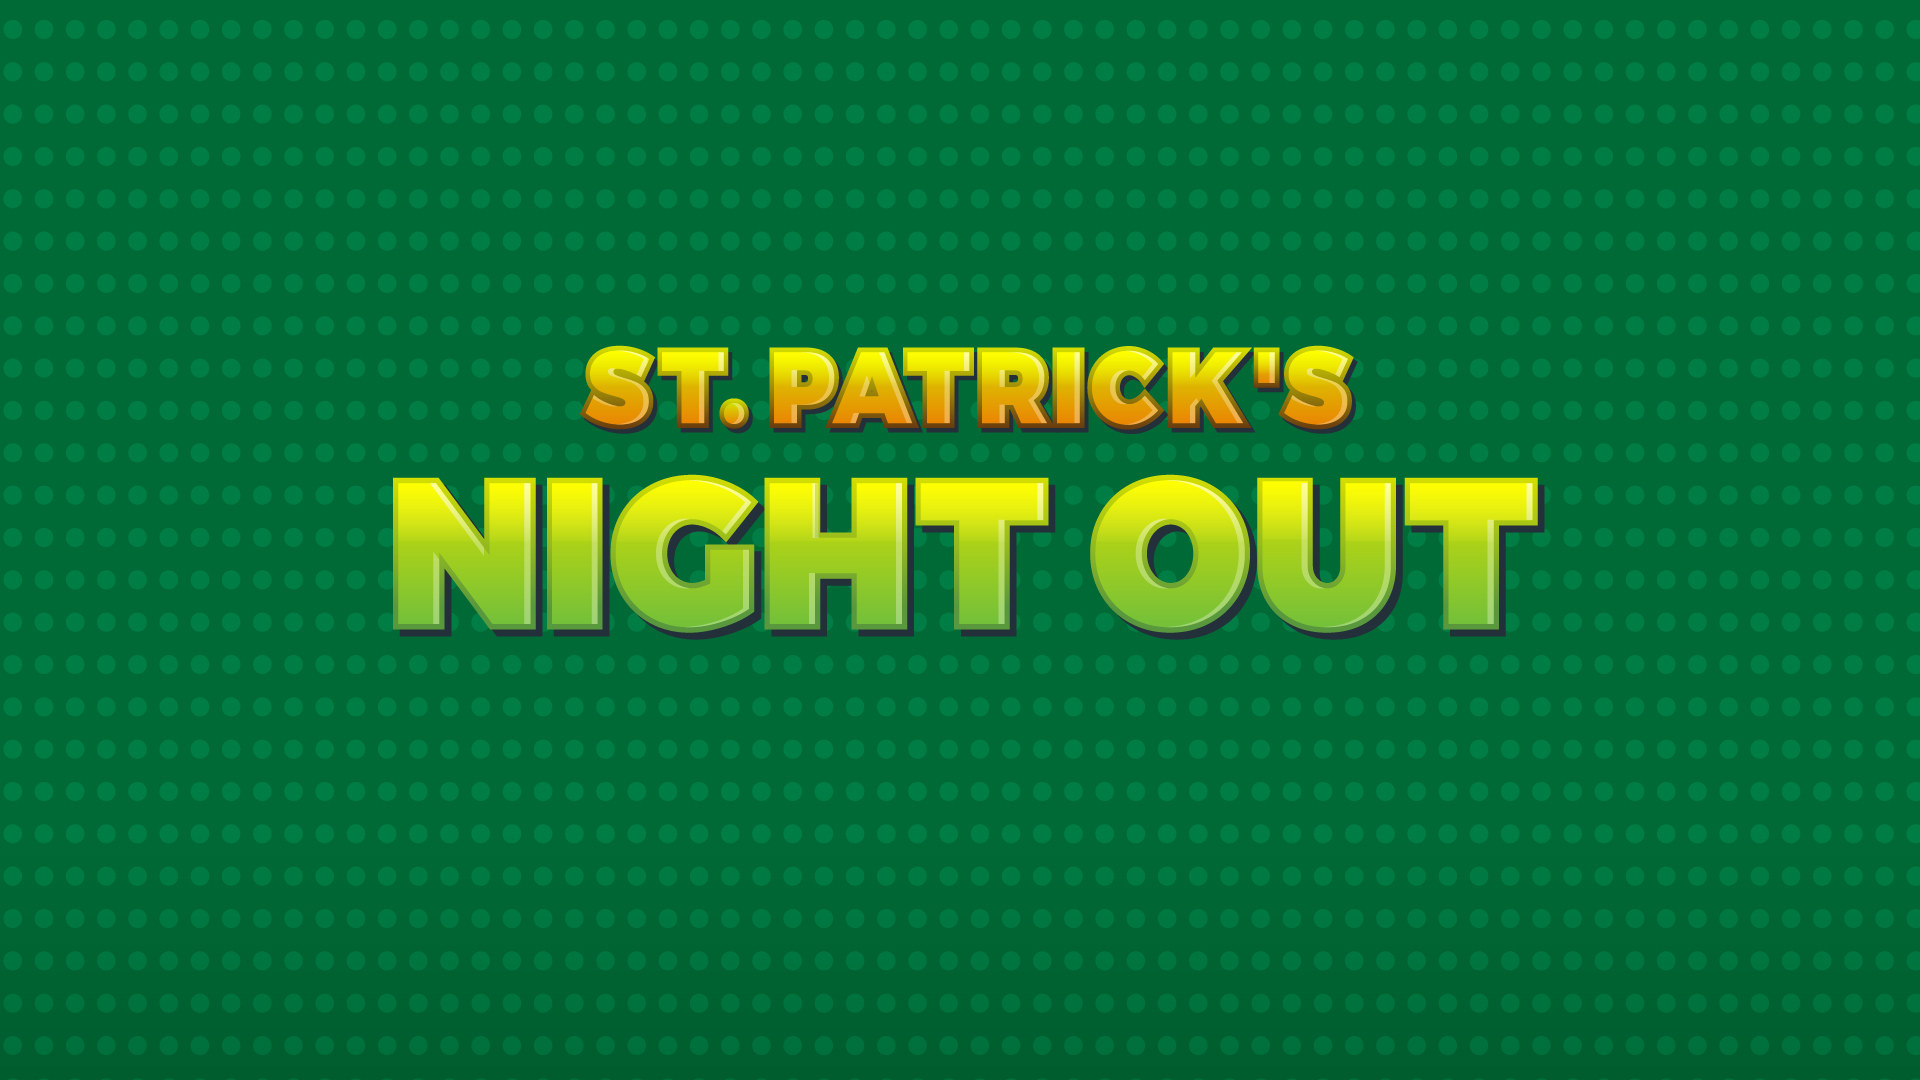 St. Patrick's Night Out